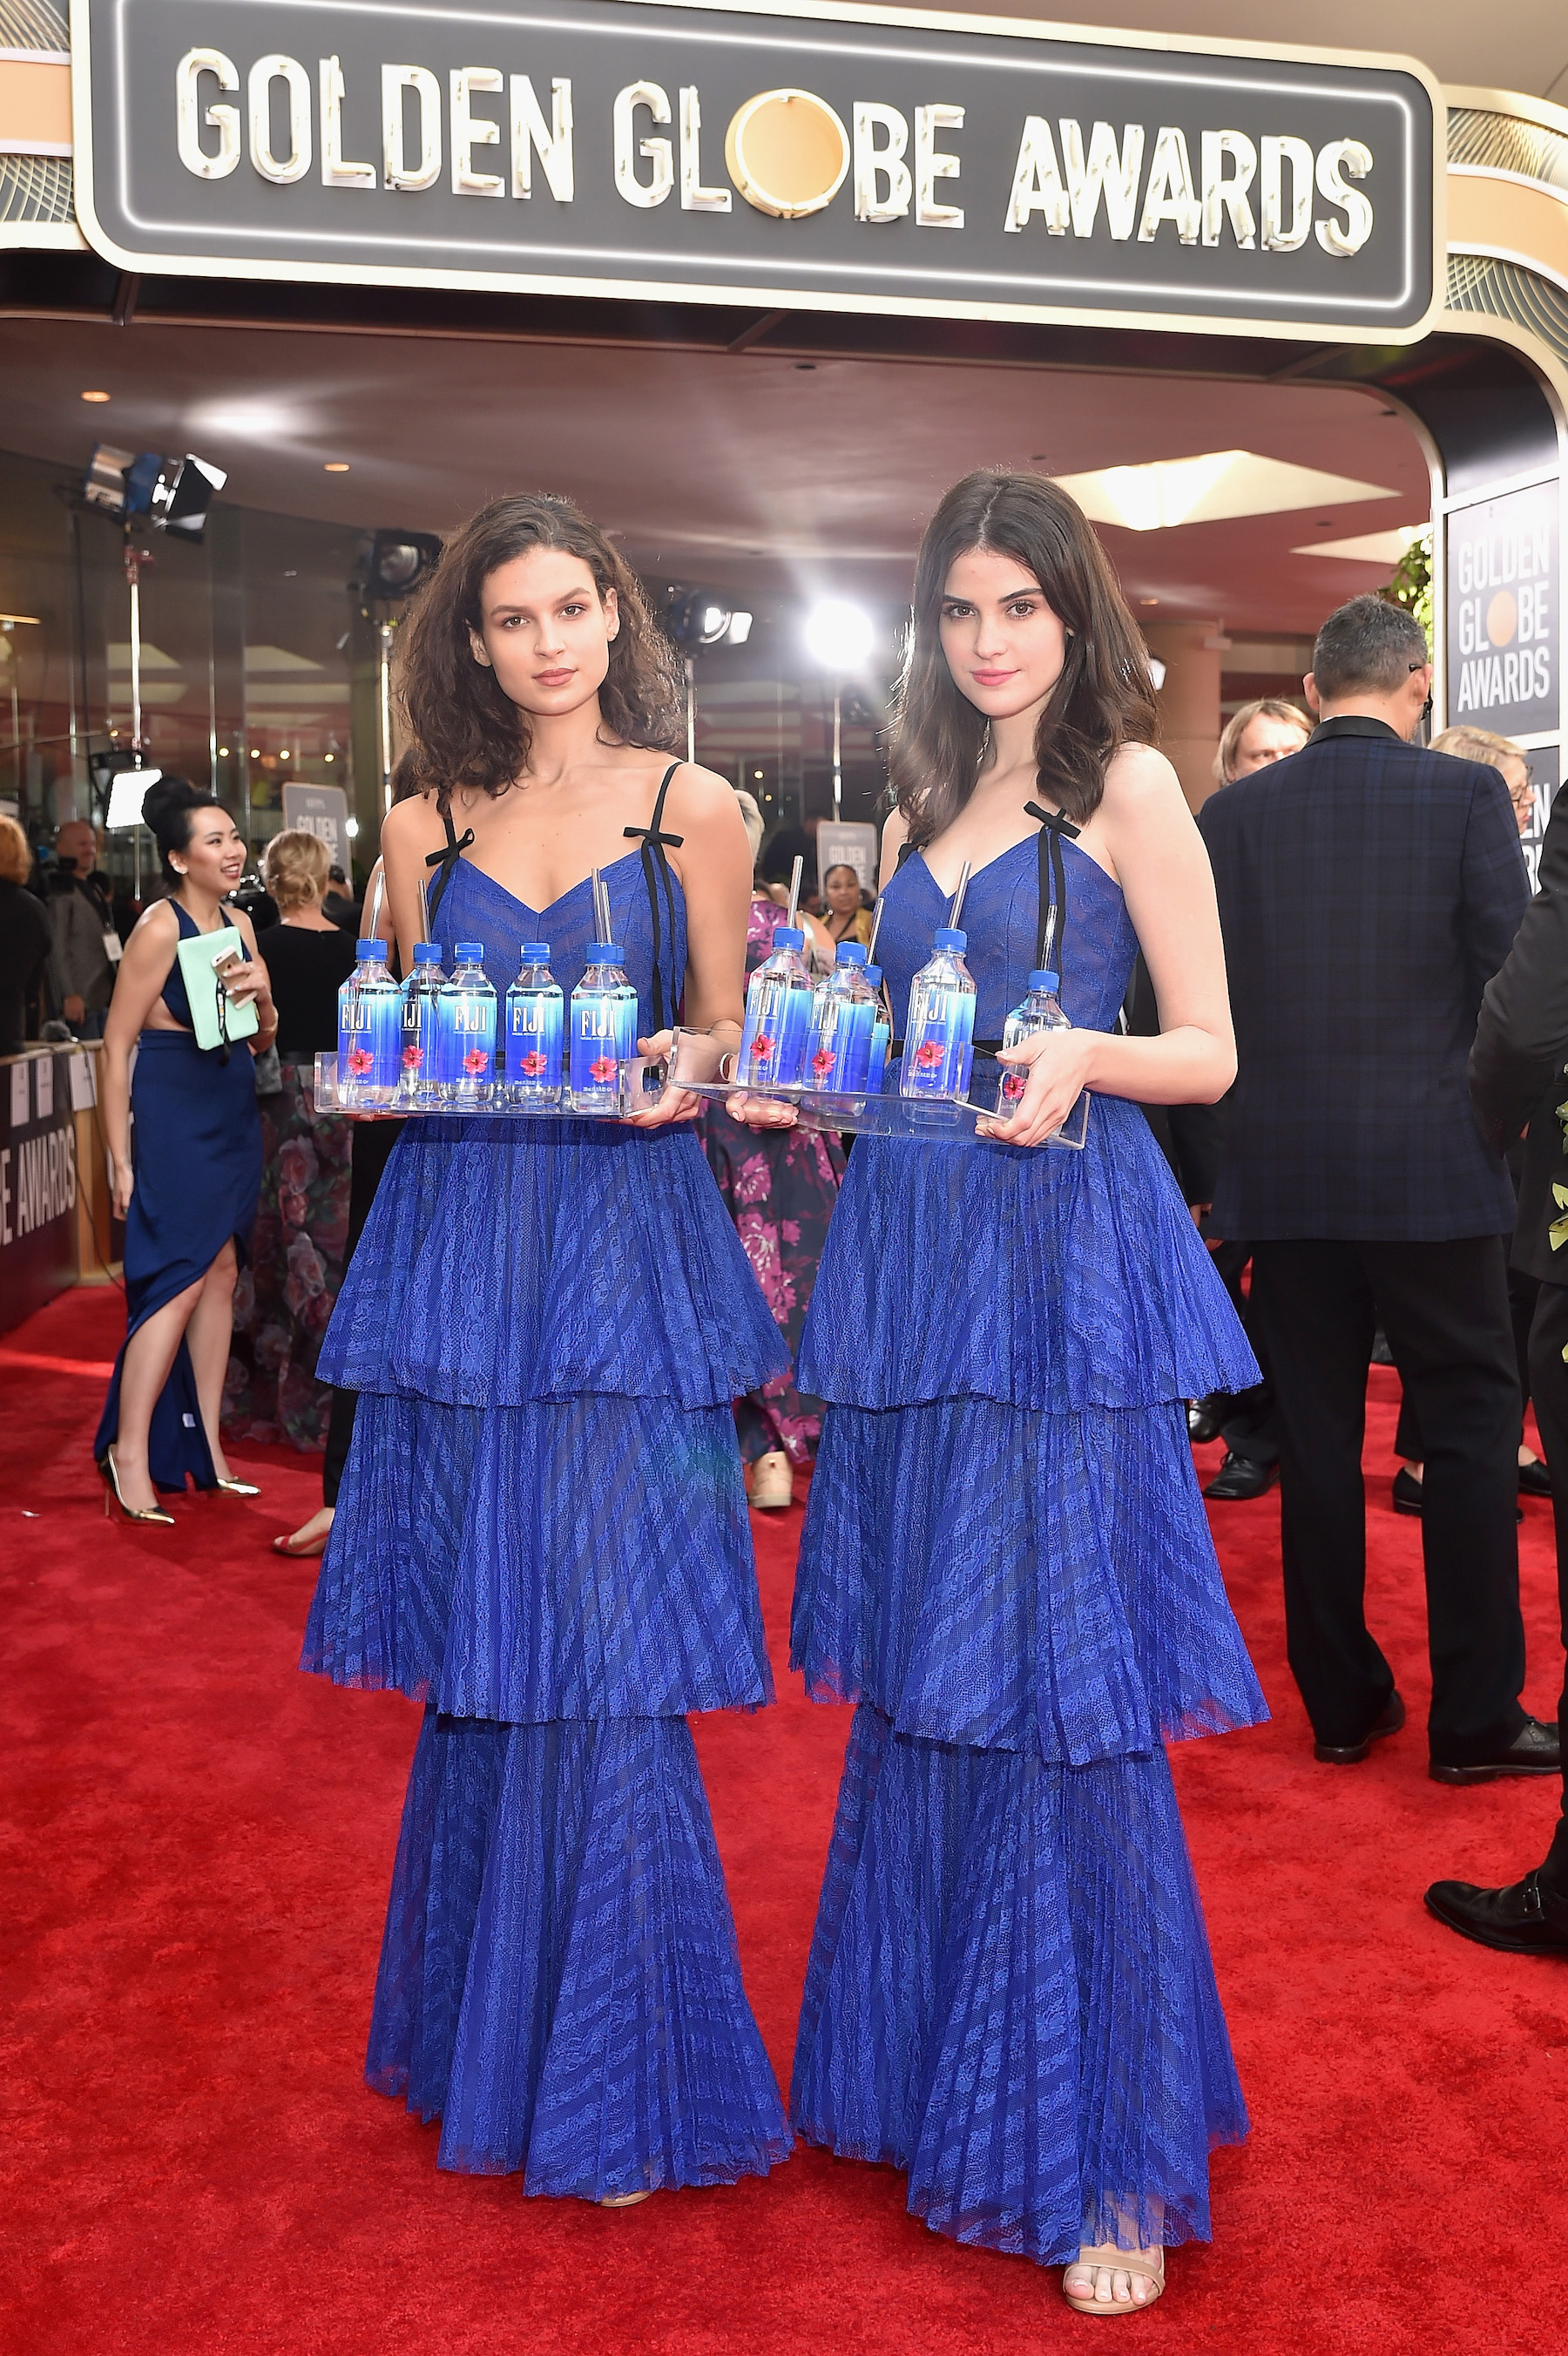 <div class='meta'><div class='origin-logo' data-origin='Creative Content'></div><span class='caption-text' data-credit='Stefanie Keenan/Getty Images for FIJI Water'>FIJI Water at the 76th Annual Golden Globe Awards on January 6, 2019 at the Beverly Hilton  in Los Angeles, California.</span></div>